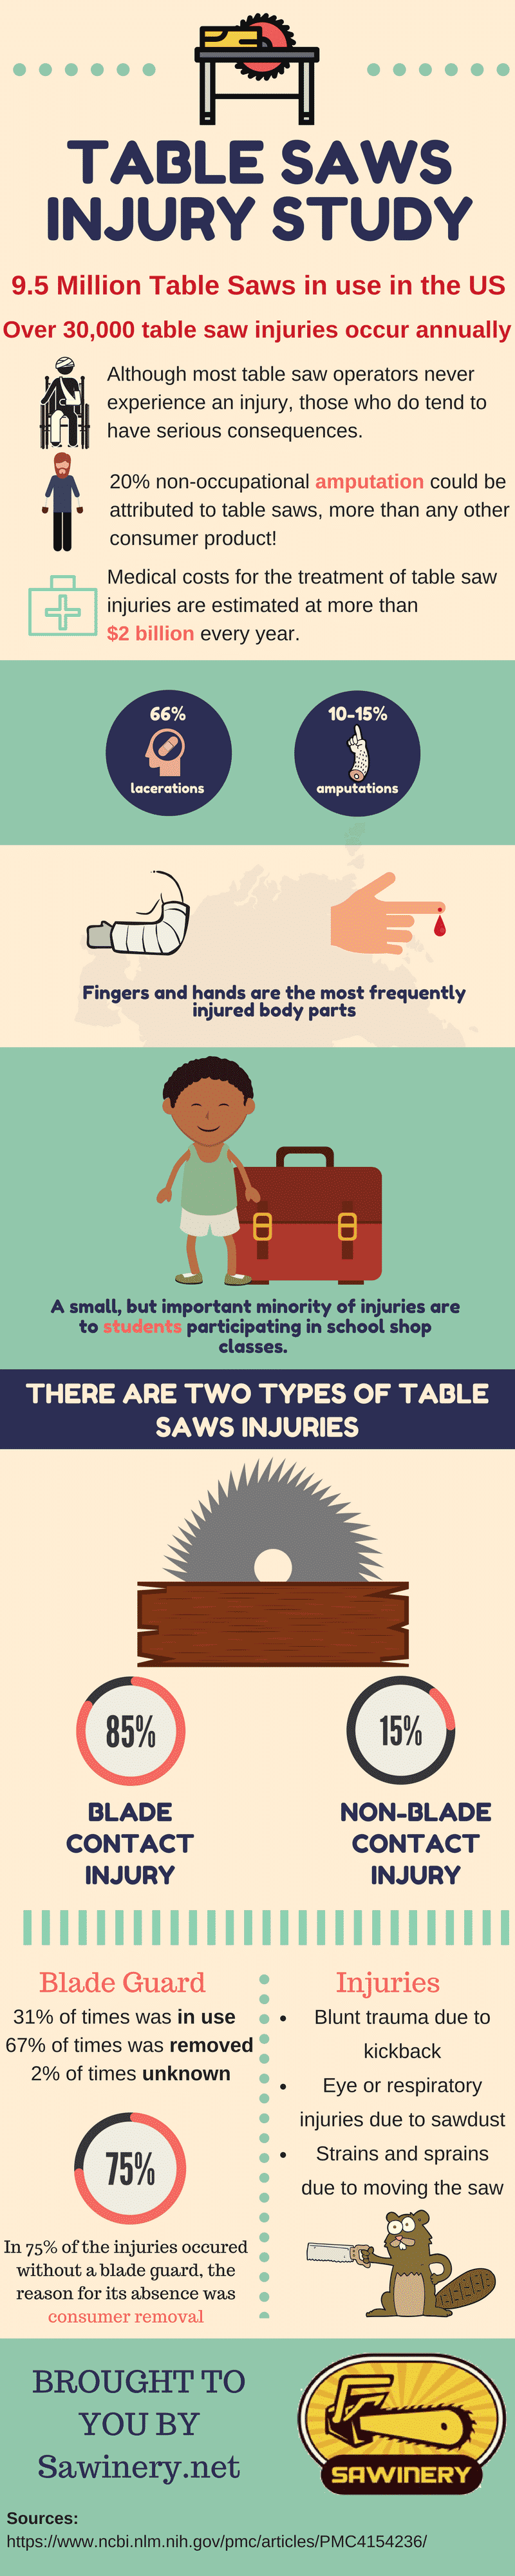 Table Saws Injuries study infographic